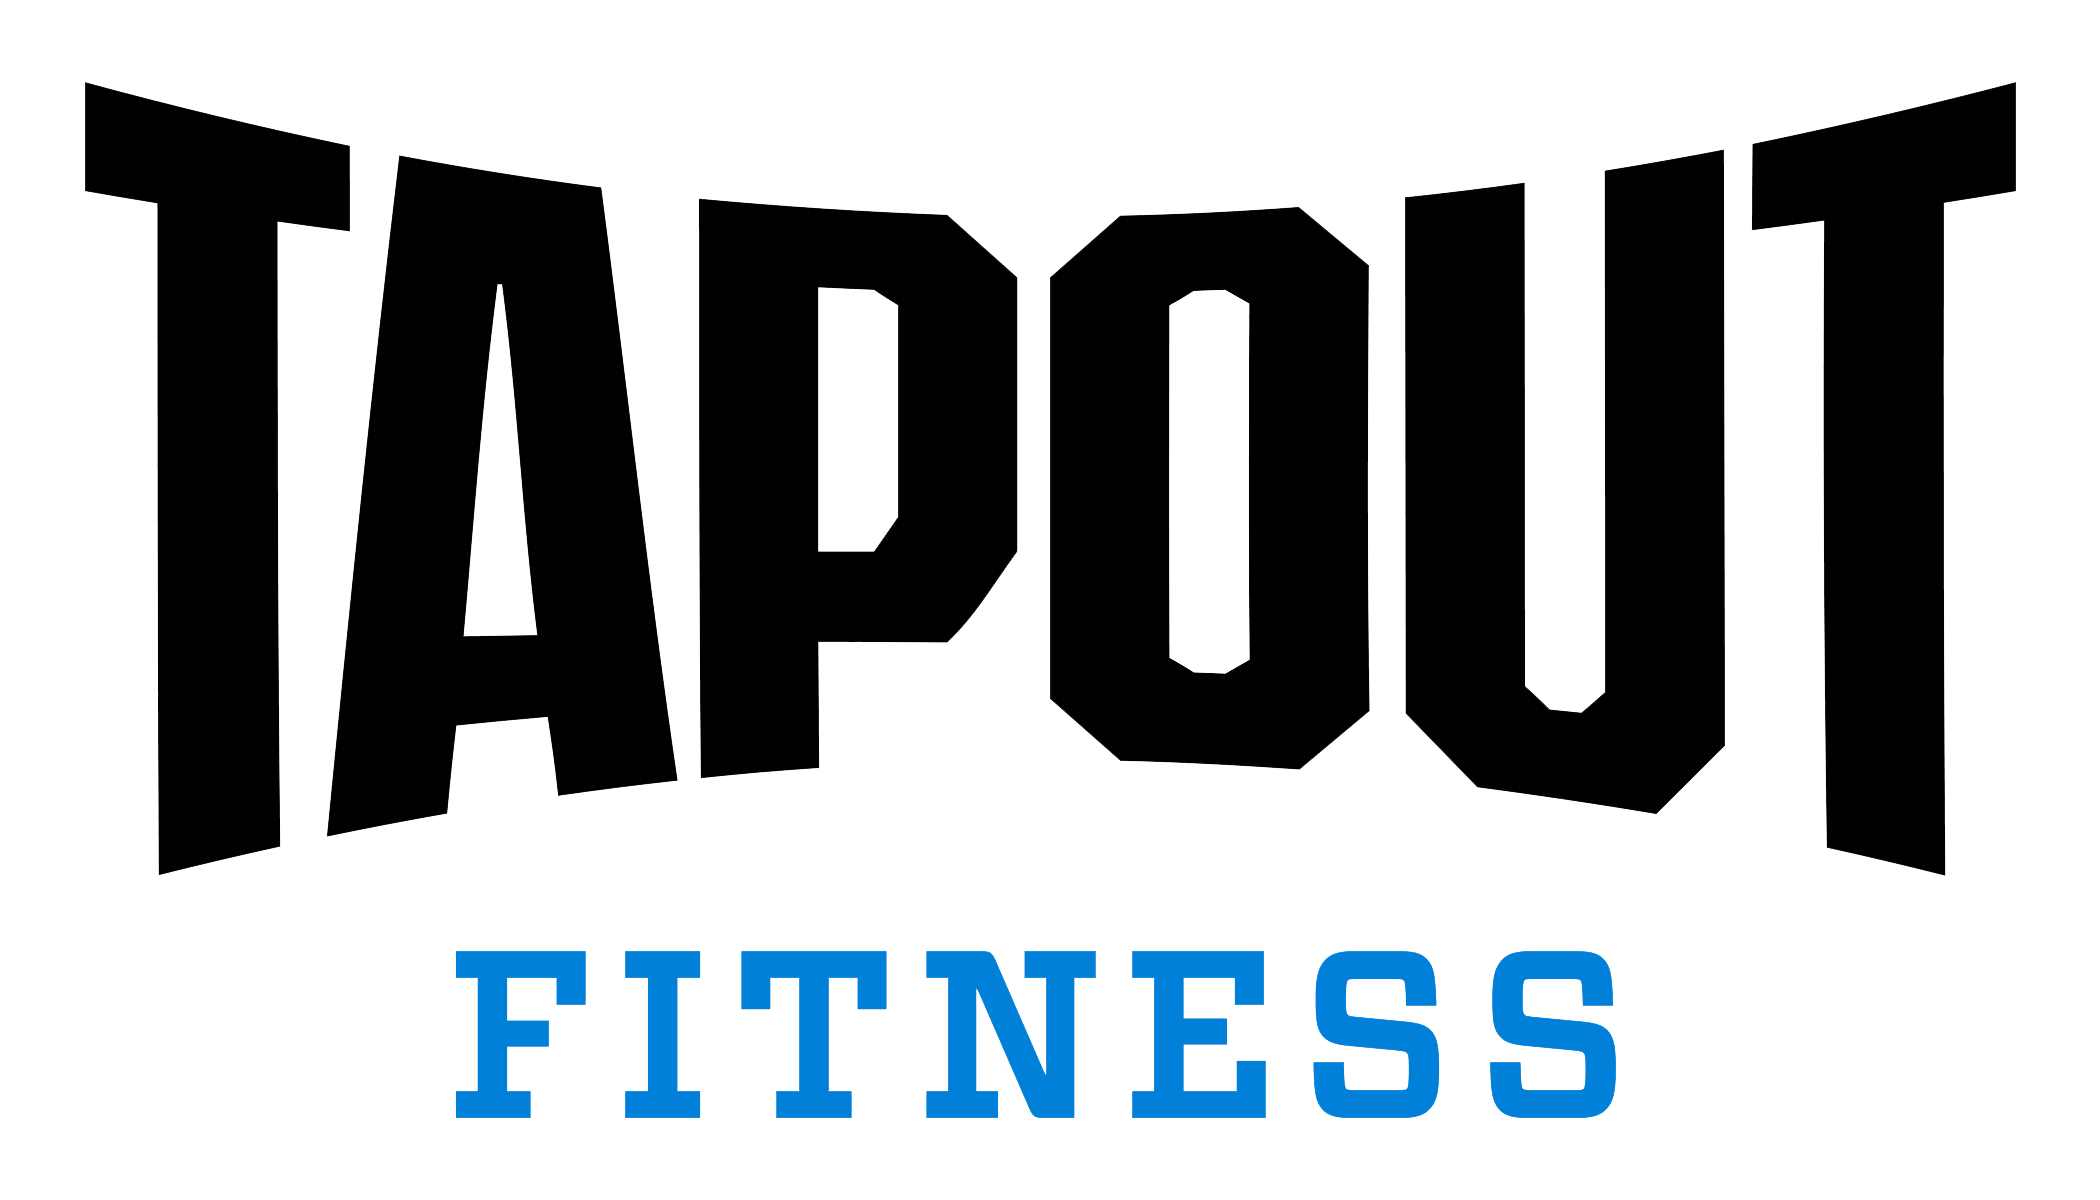 Tapout_Fitness_Black-5.16.17[1].png